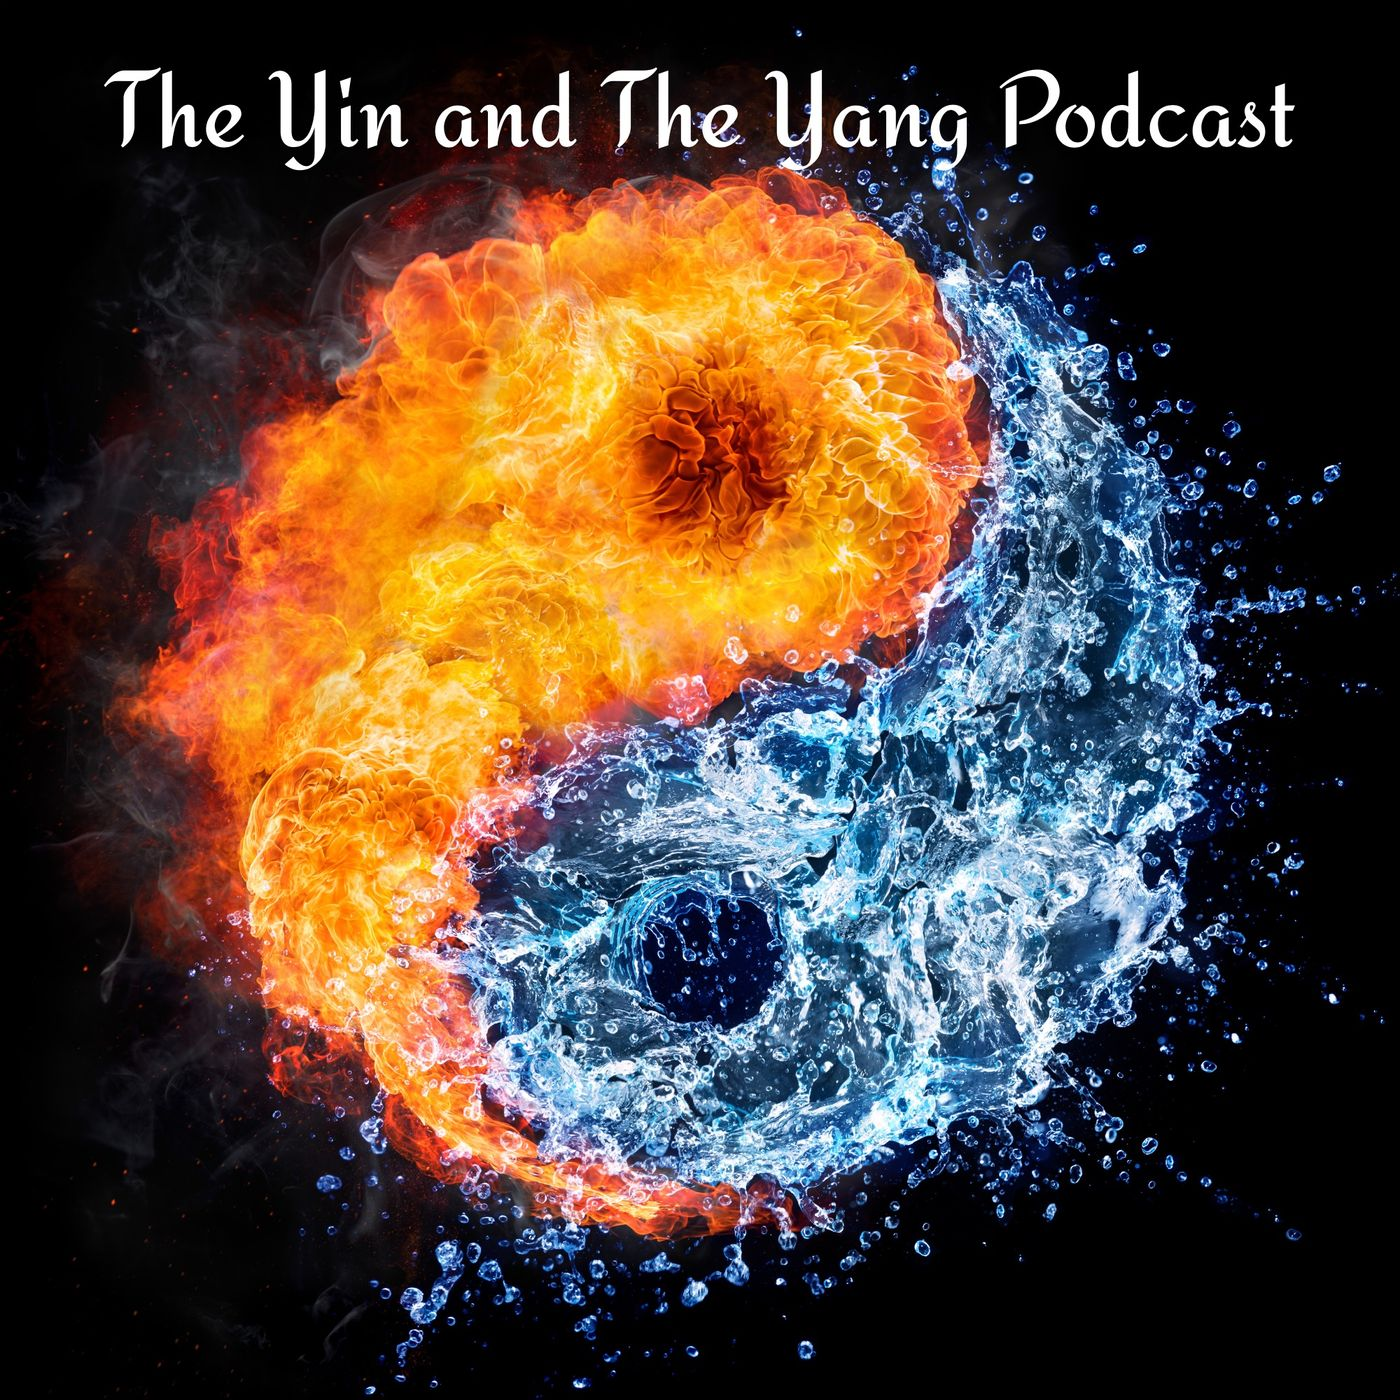 The Yin and The Yang Podcast